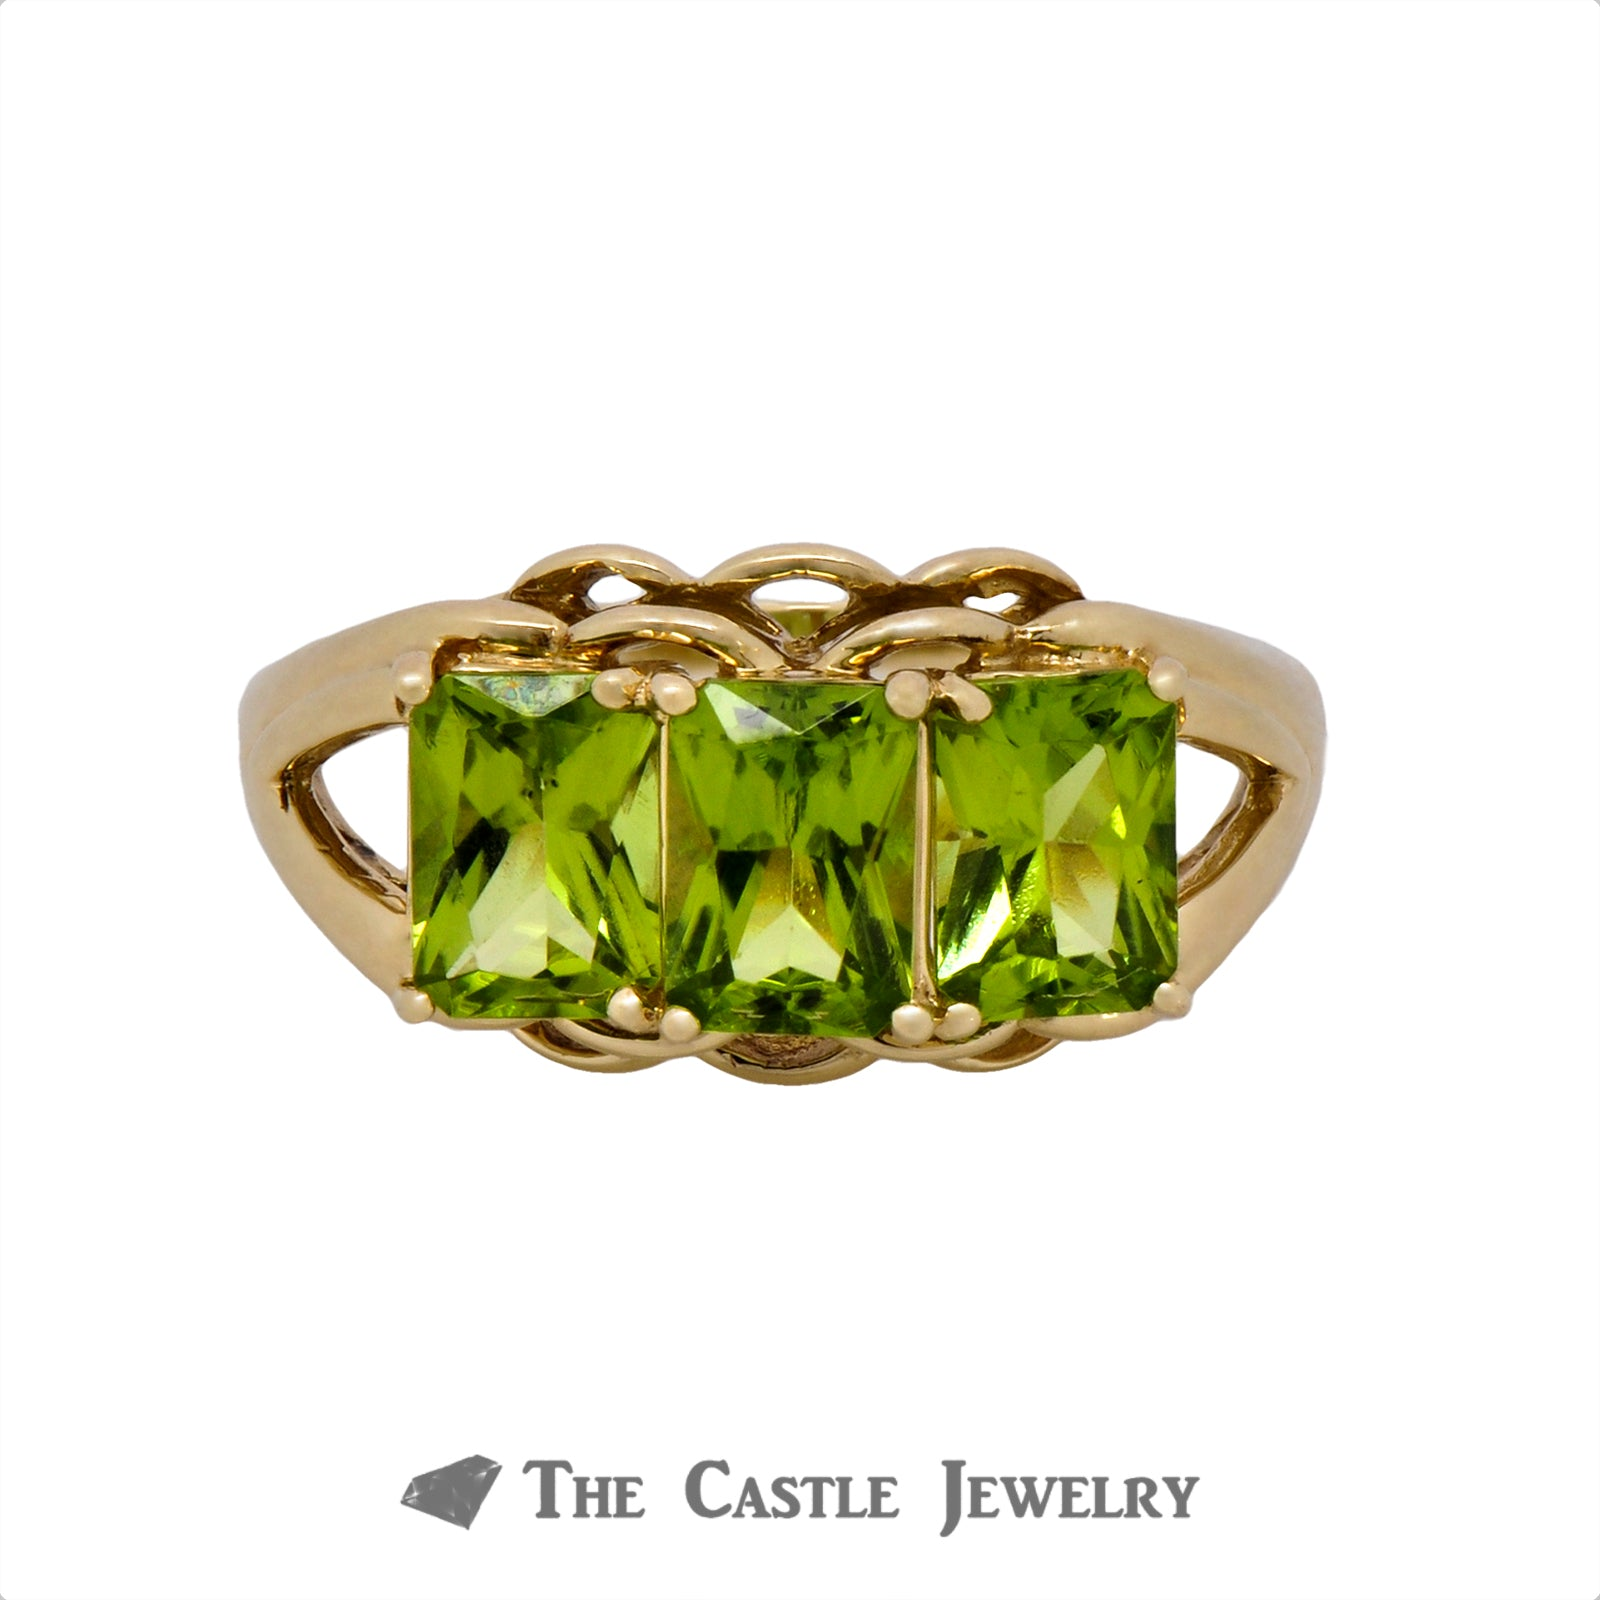 Lovely Three Stone Emerald Cut Peridot Ring Crafted in 14k Yellow Gold